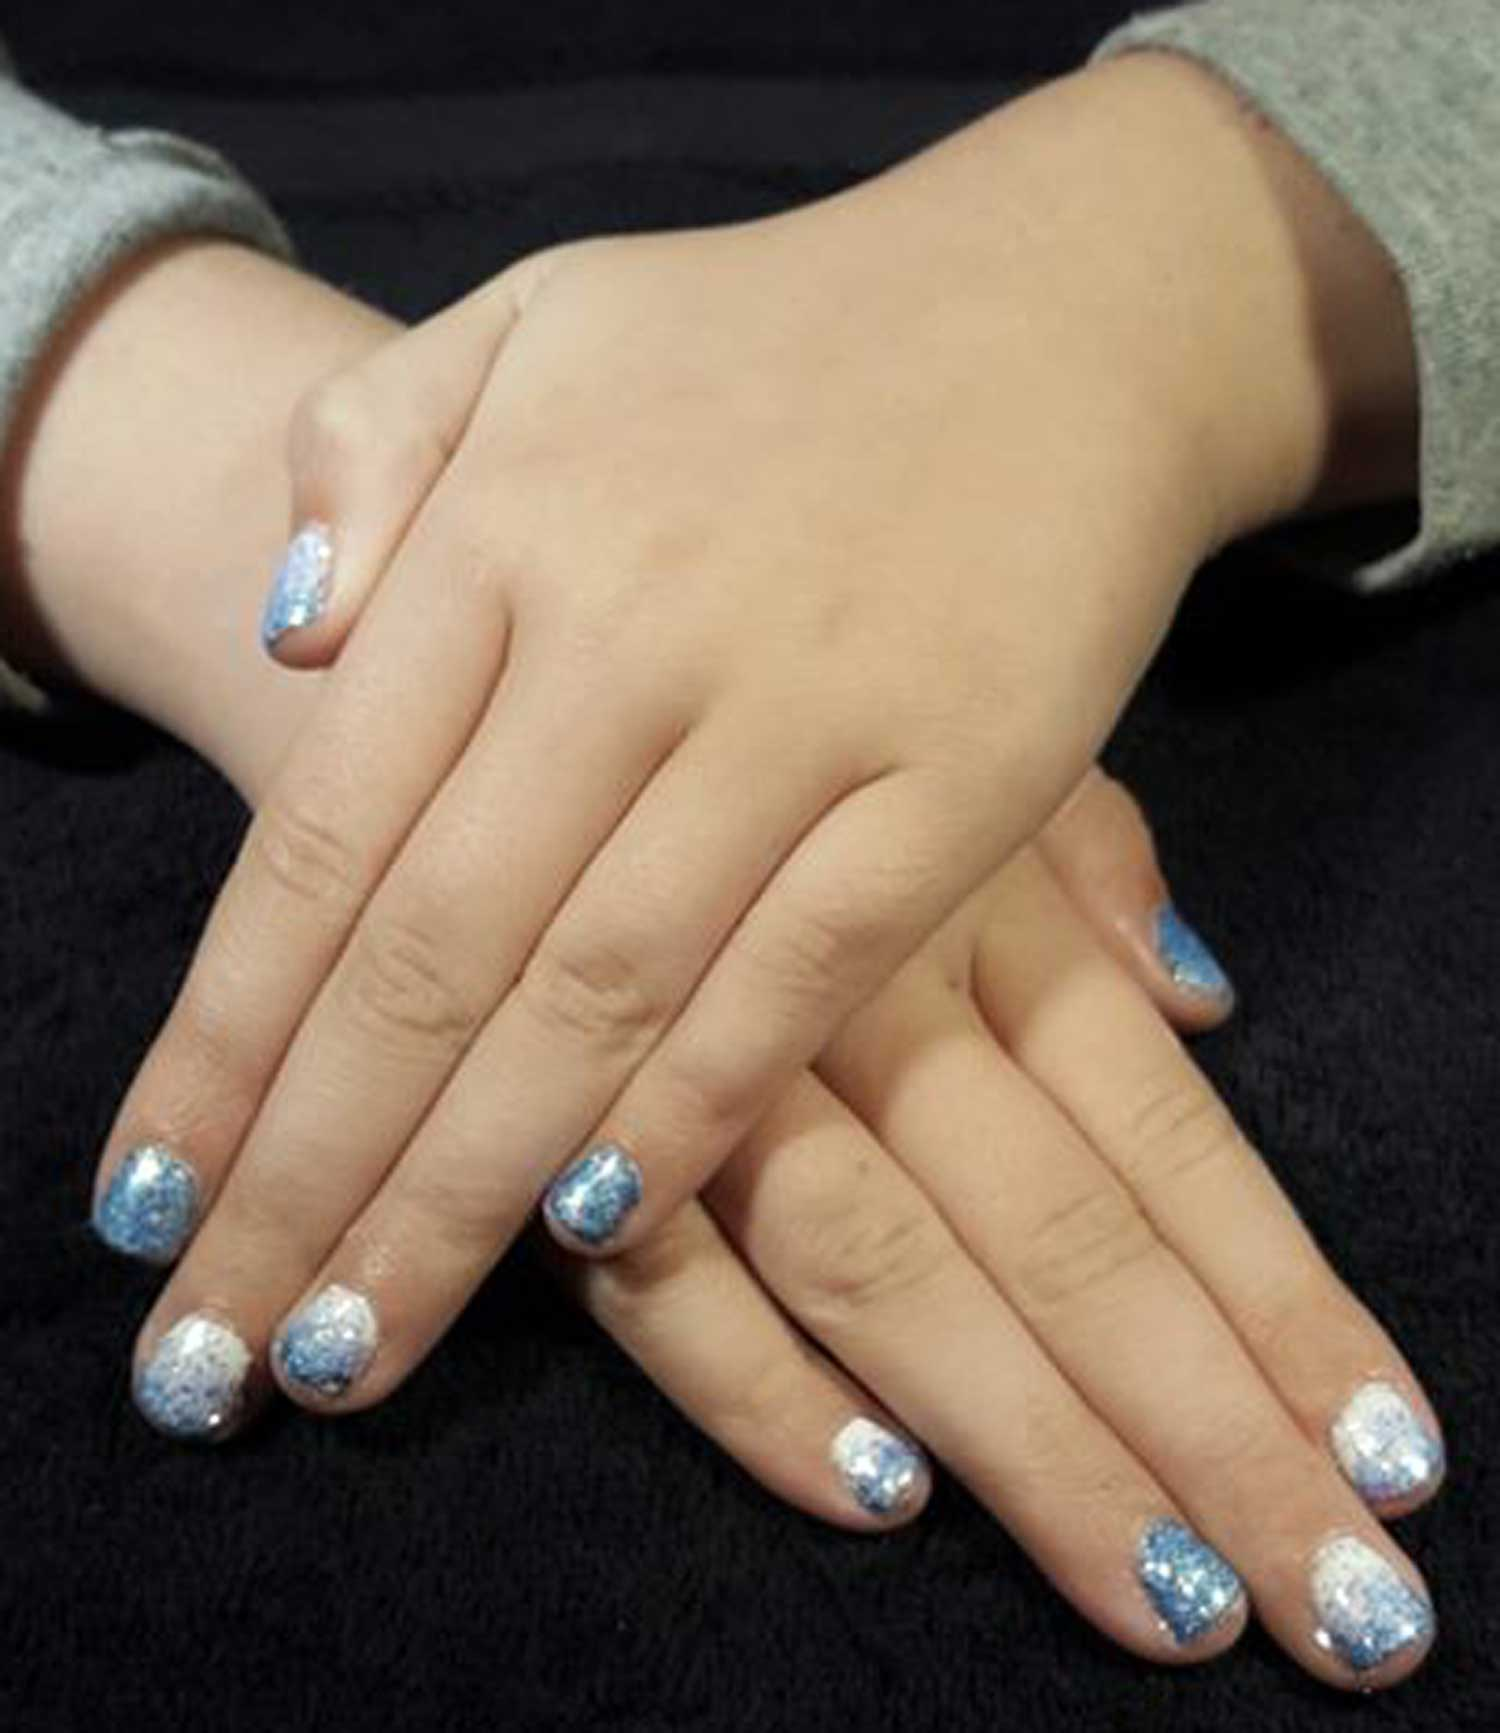 Tookii things to do with kids Frozen nail art one of the activities for kids